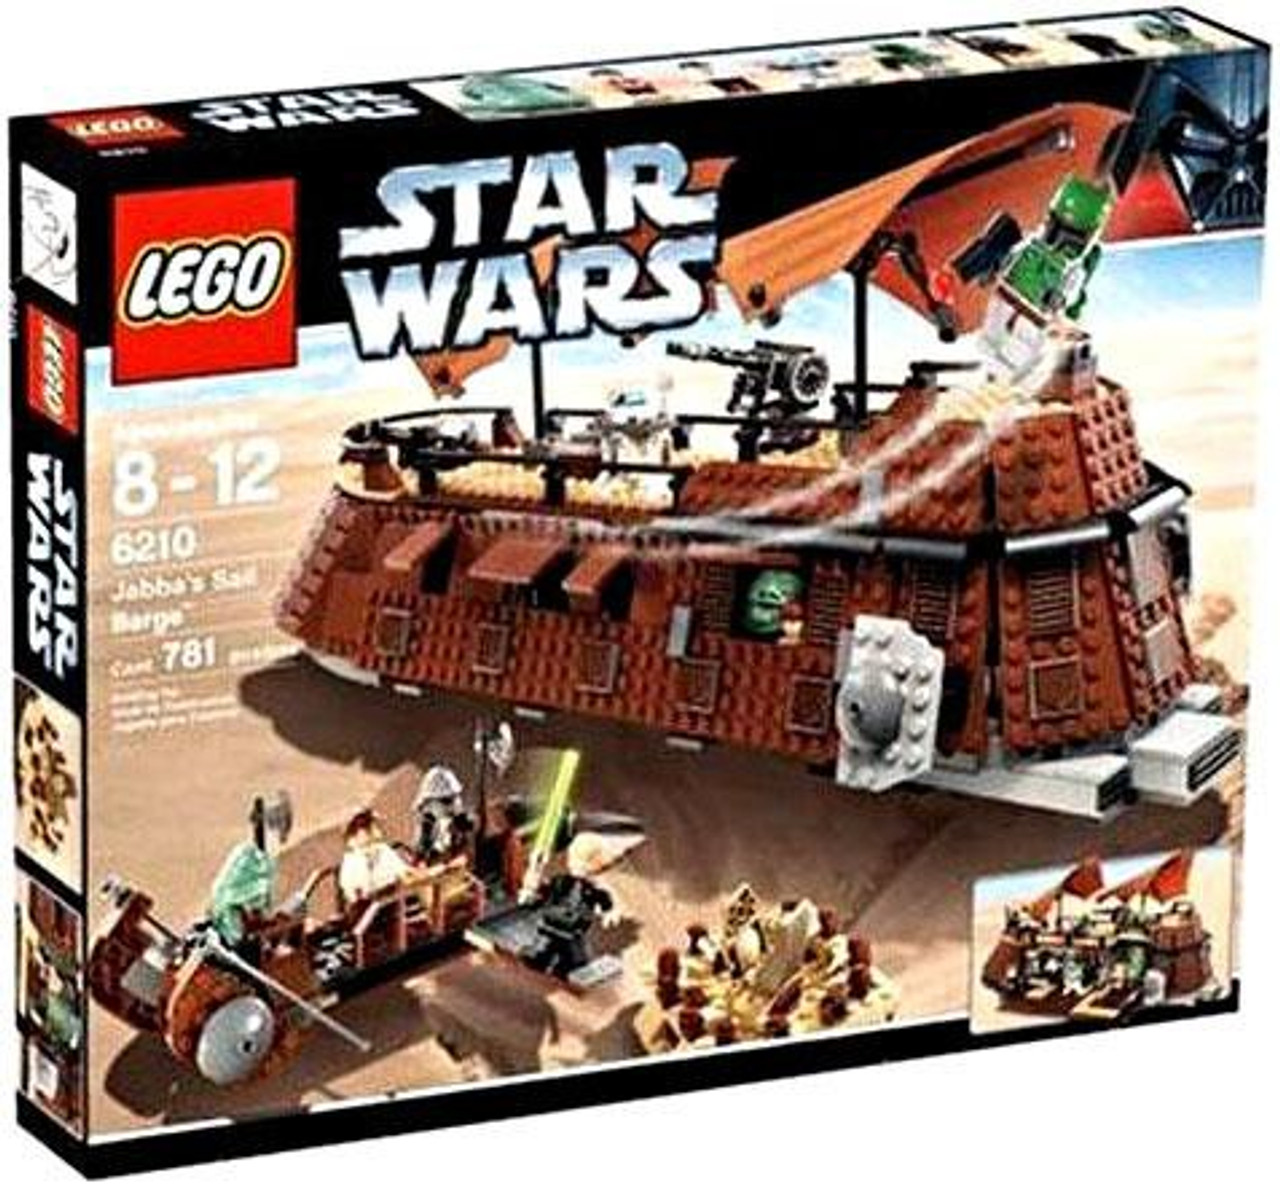 LEGO Star Wars Return of the Jedi Jabba's Sail Barge Set #6210